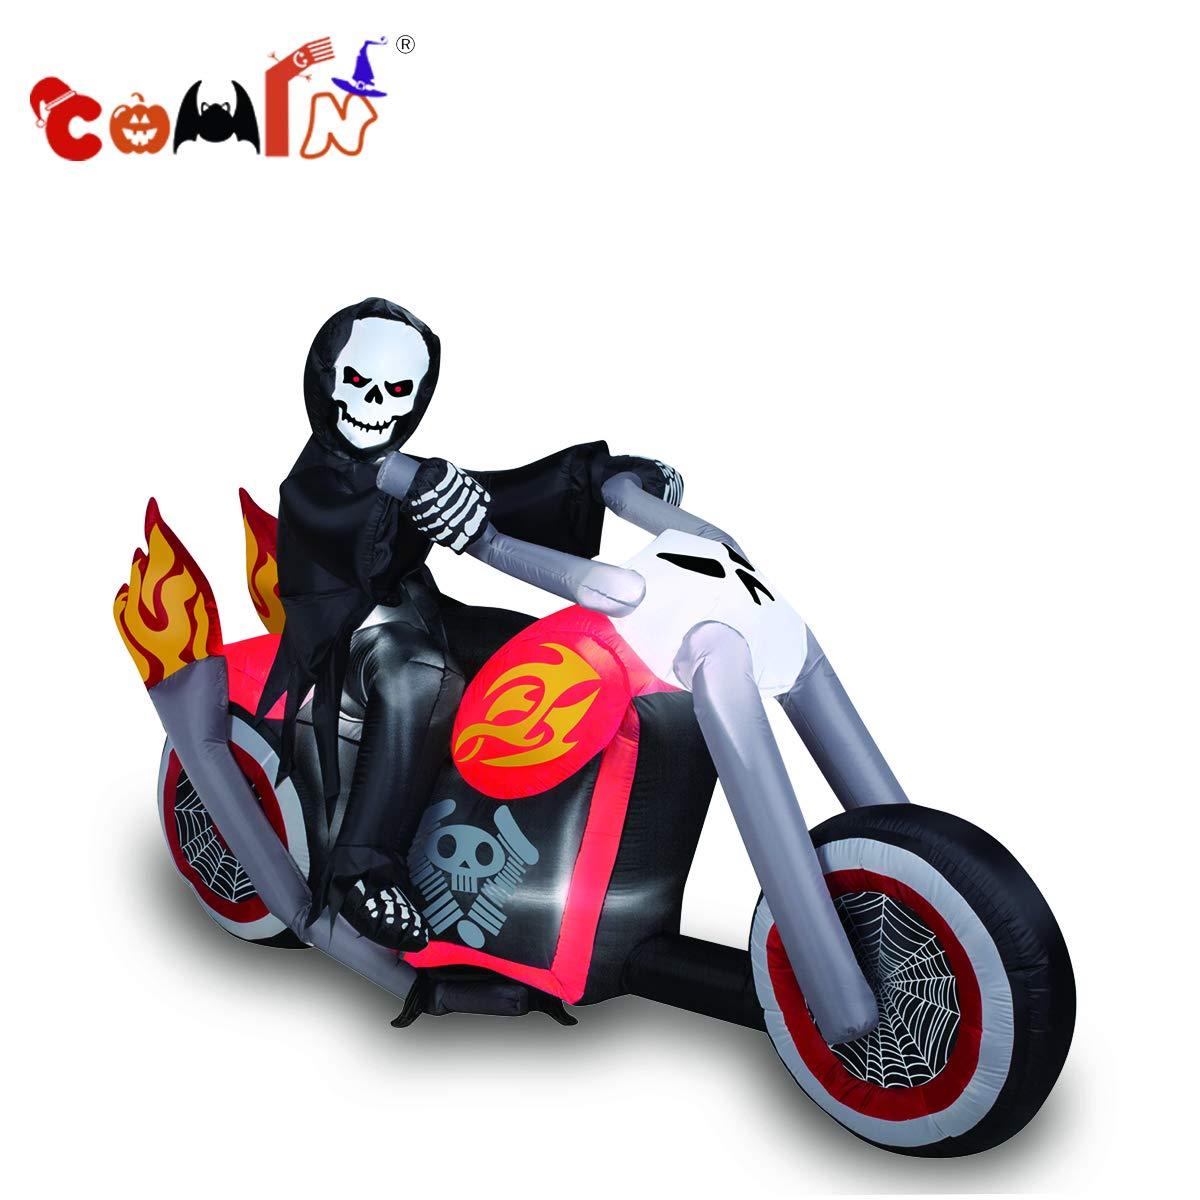 COMIN.NET Halloween Inflatables Blow up Grim Reaper on Motorcycle for Halloween Outdoor Decoration 6ft Long